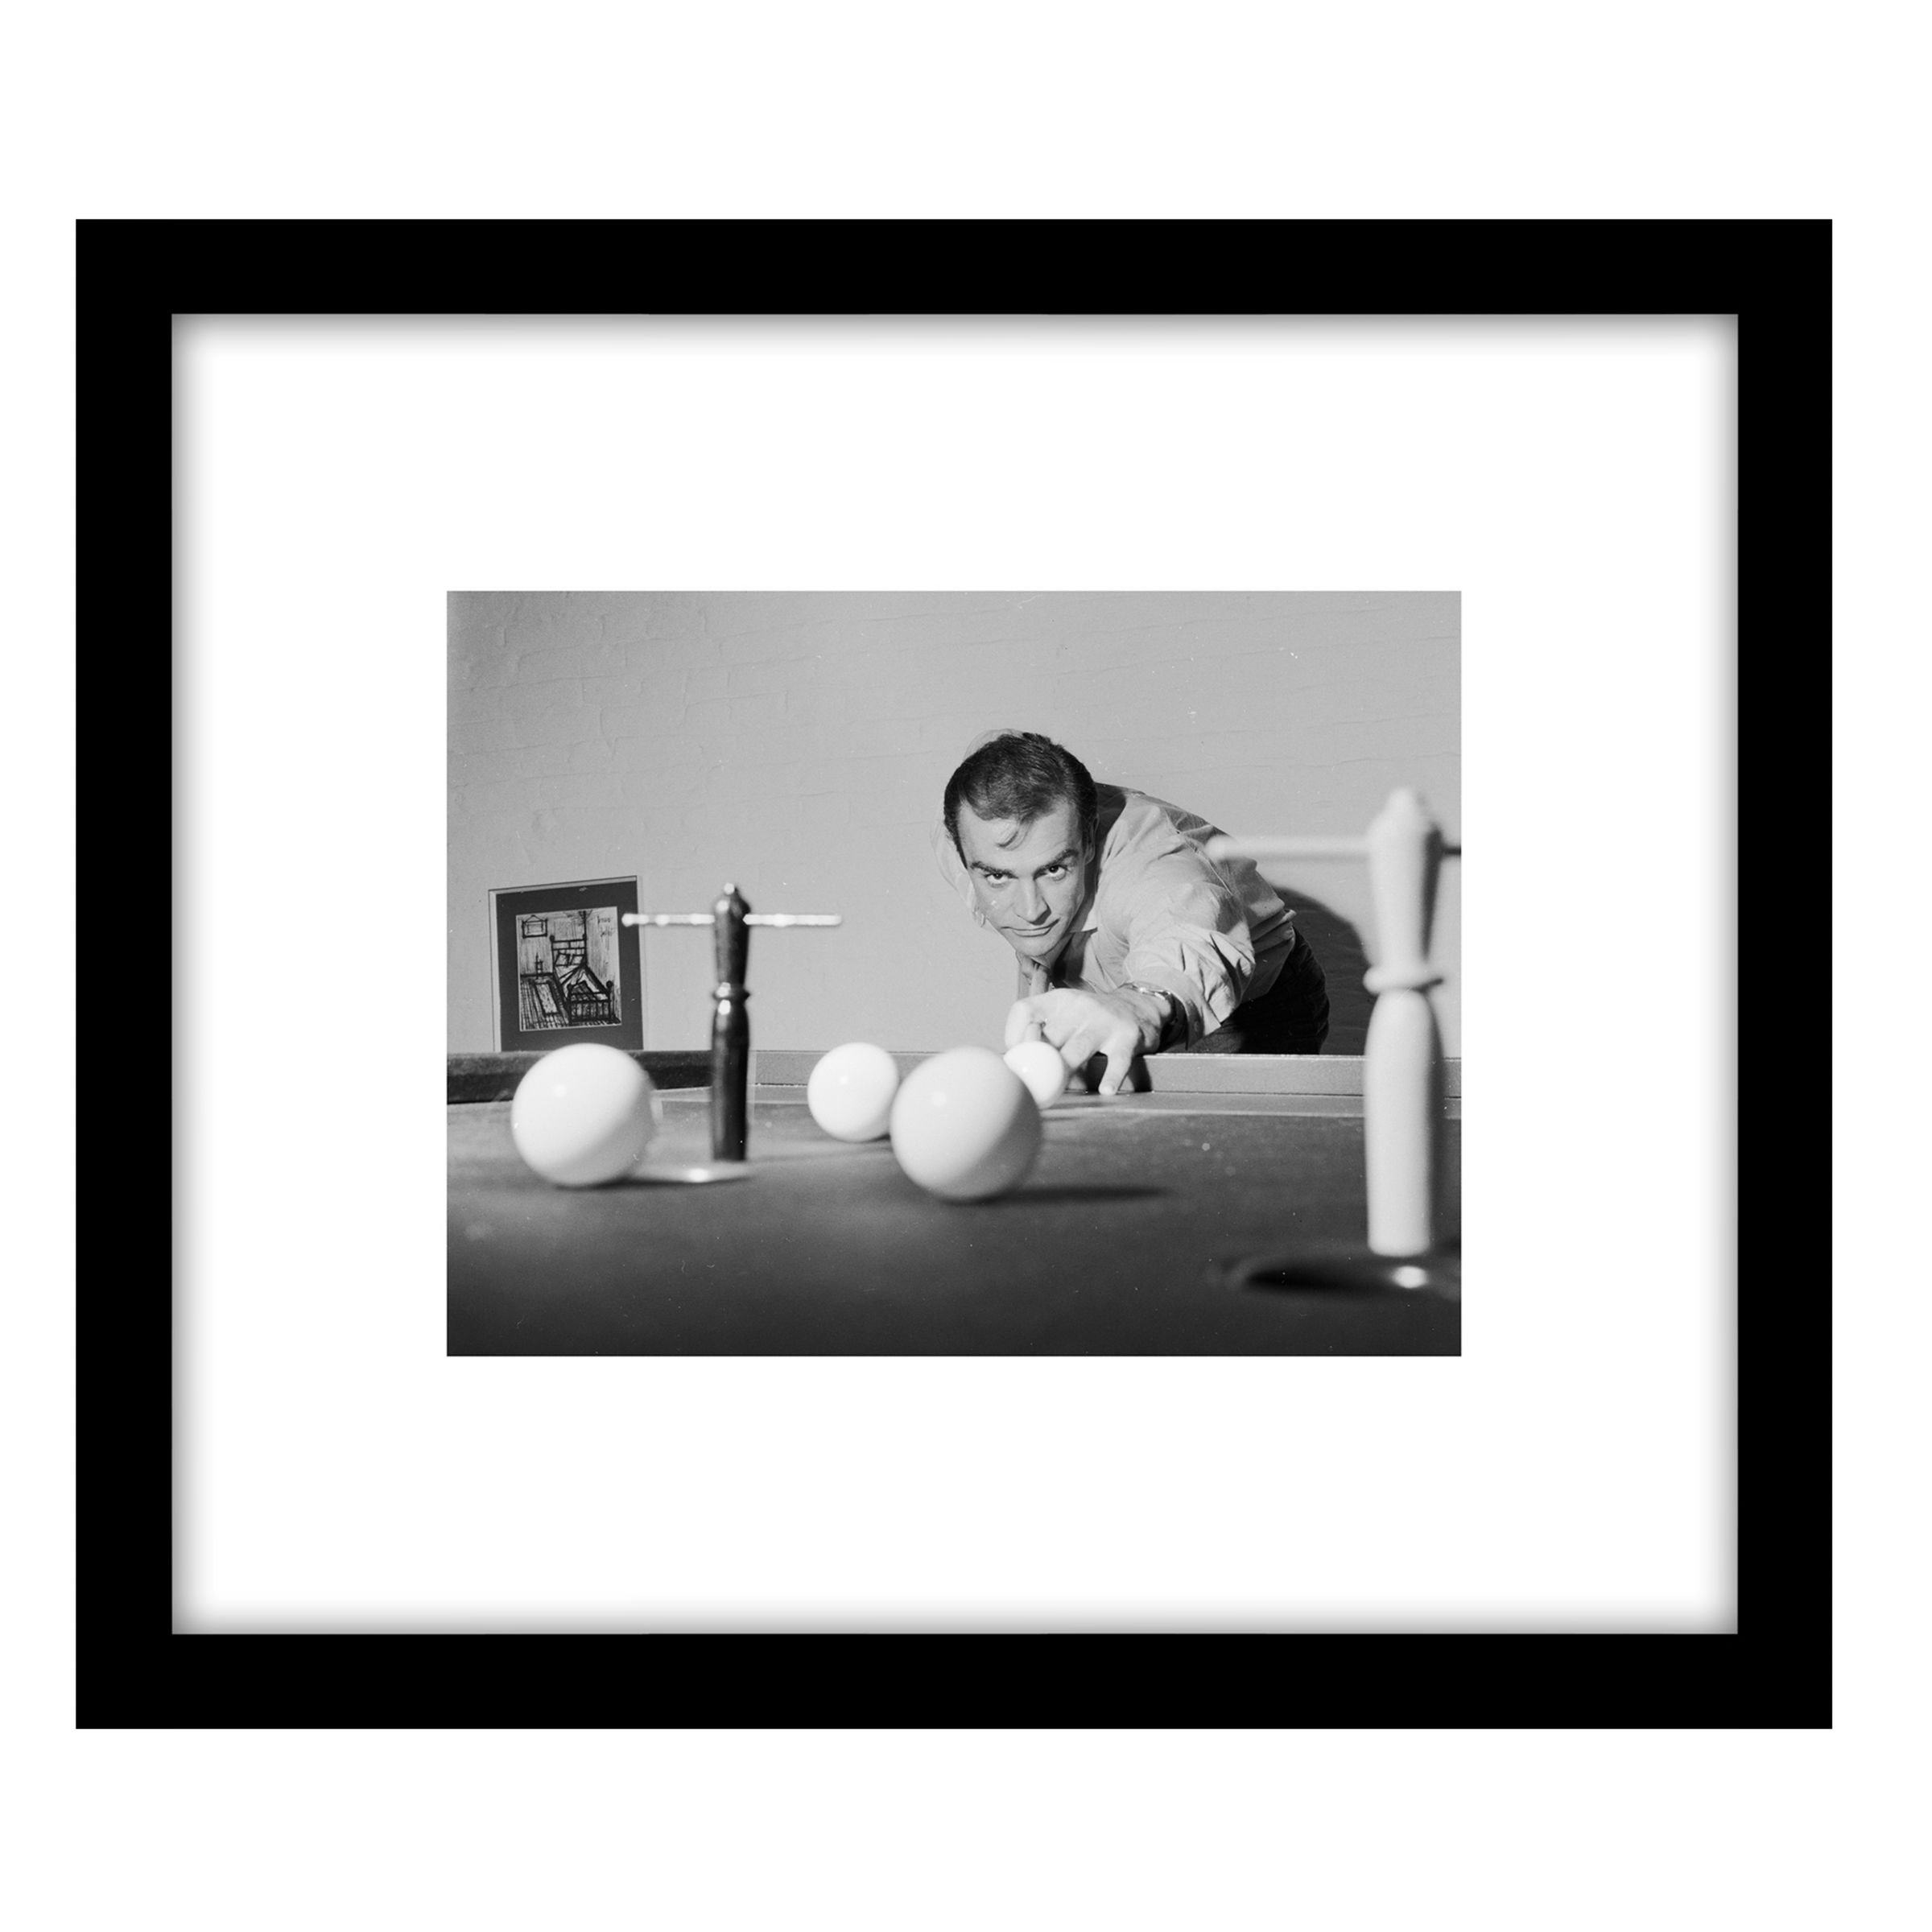 Getty Images Gallery Getty Images Gallery Billiard James Bond Framed Print, 49 x 57cm